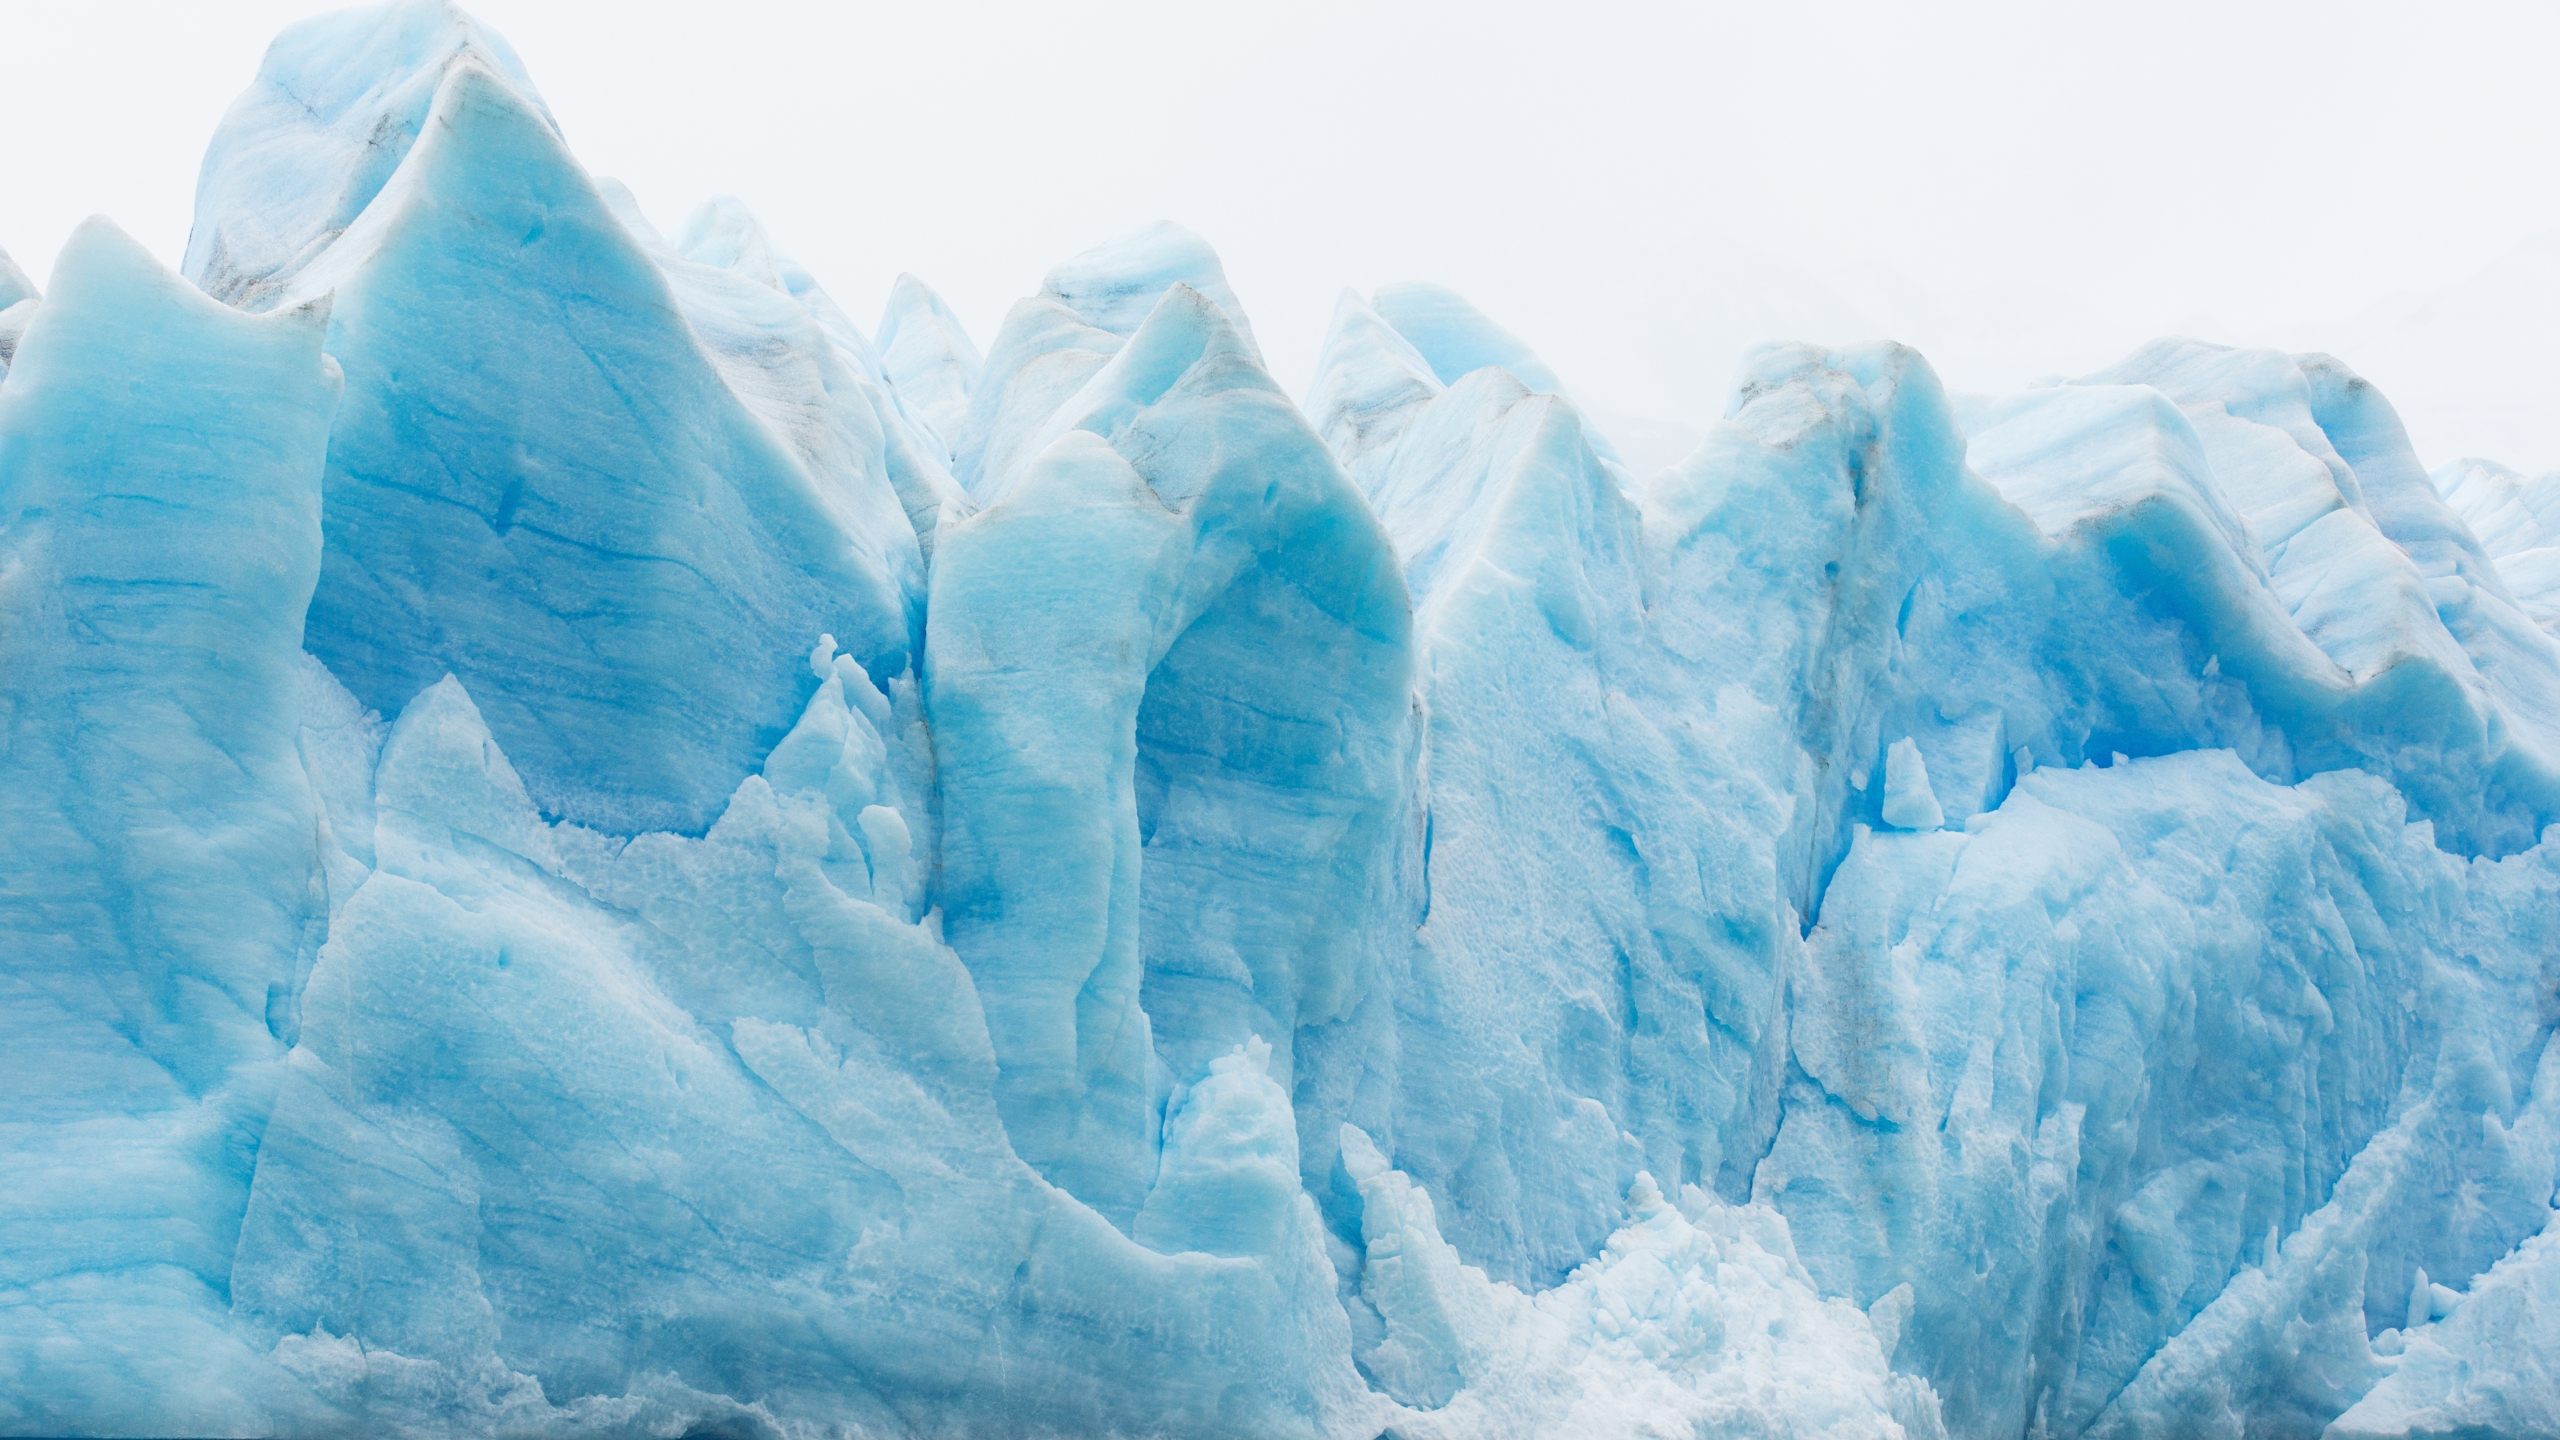 View at Glacier Grey in Torres Del Paine National Park, Chile. (Credit: iStock/Getty Images Plus)